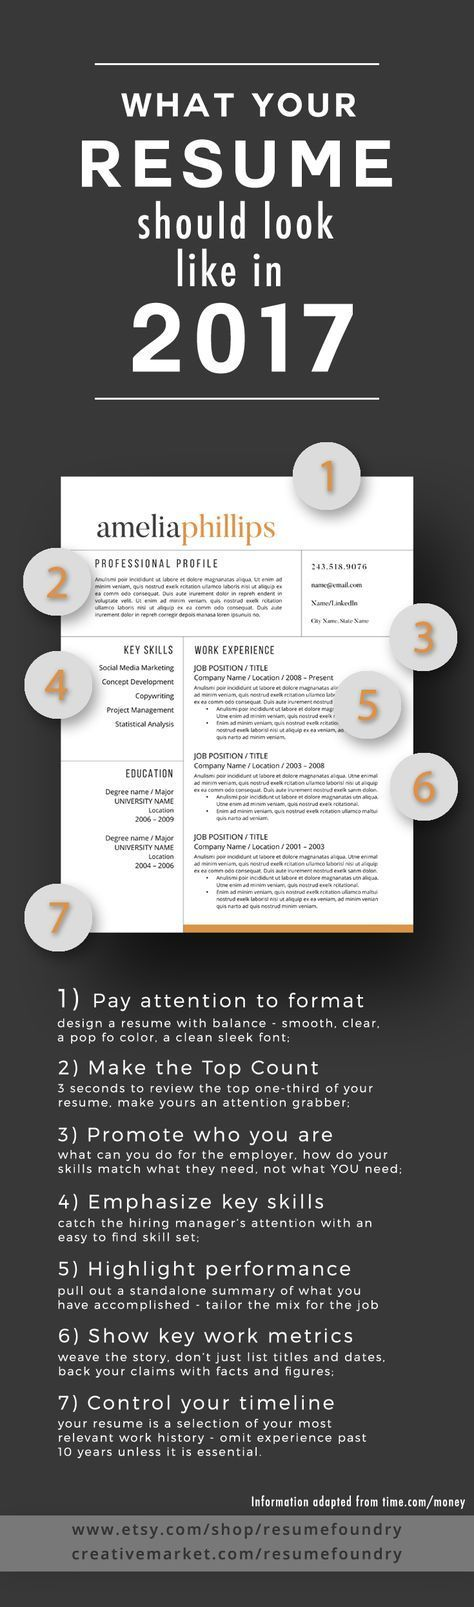 7 tips to transform your resume to 2017 Check out the article at - making your resume stand out